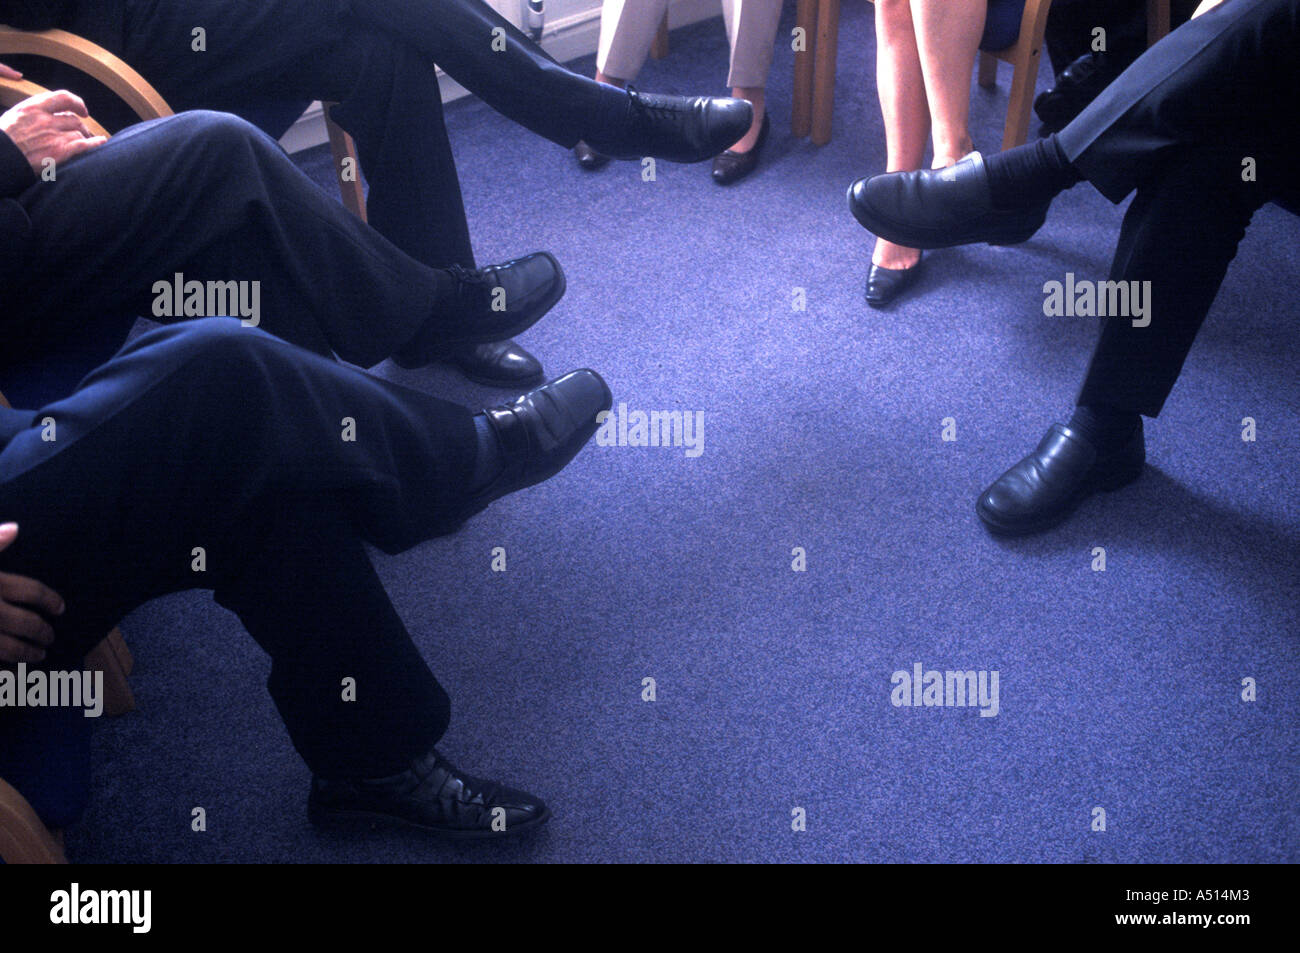 Shoes and legs of doctors and journalists at a press conference in London, UK. - Stock Image